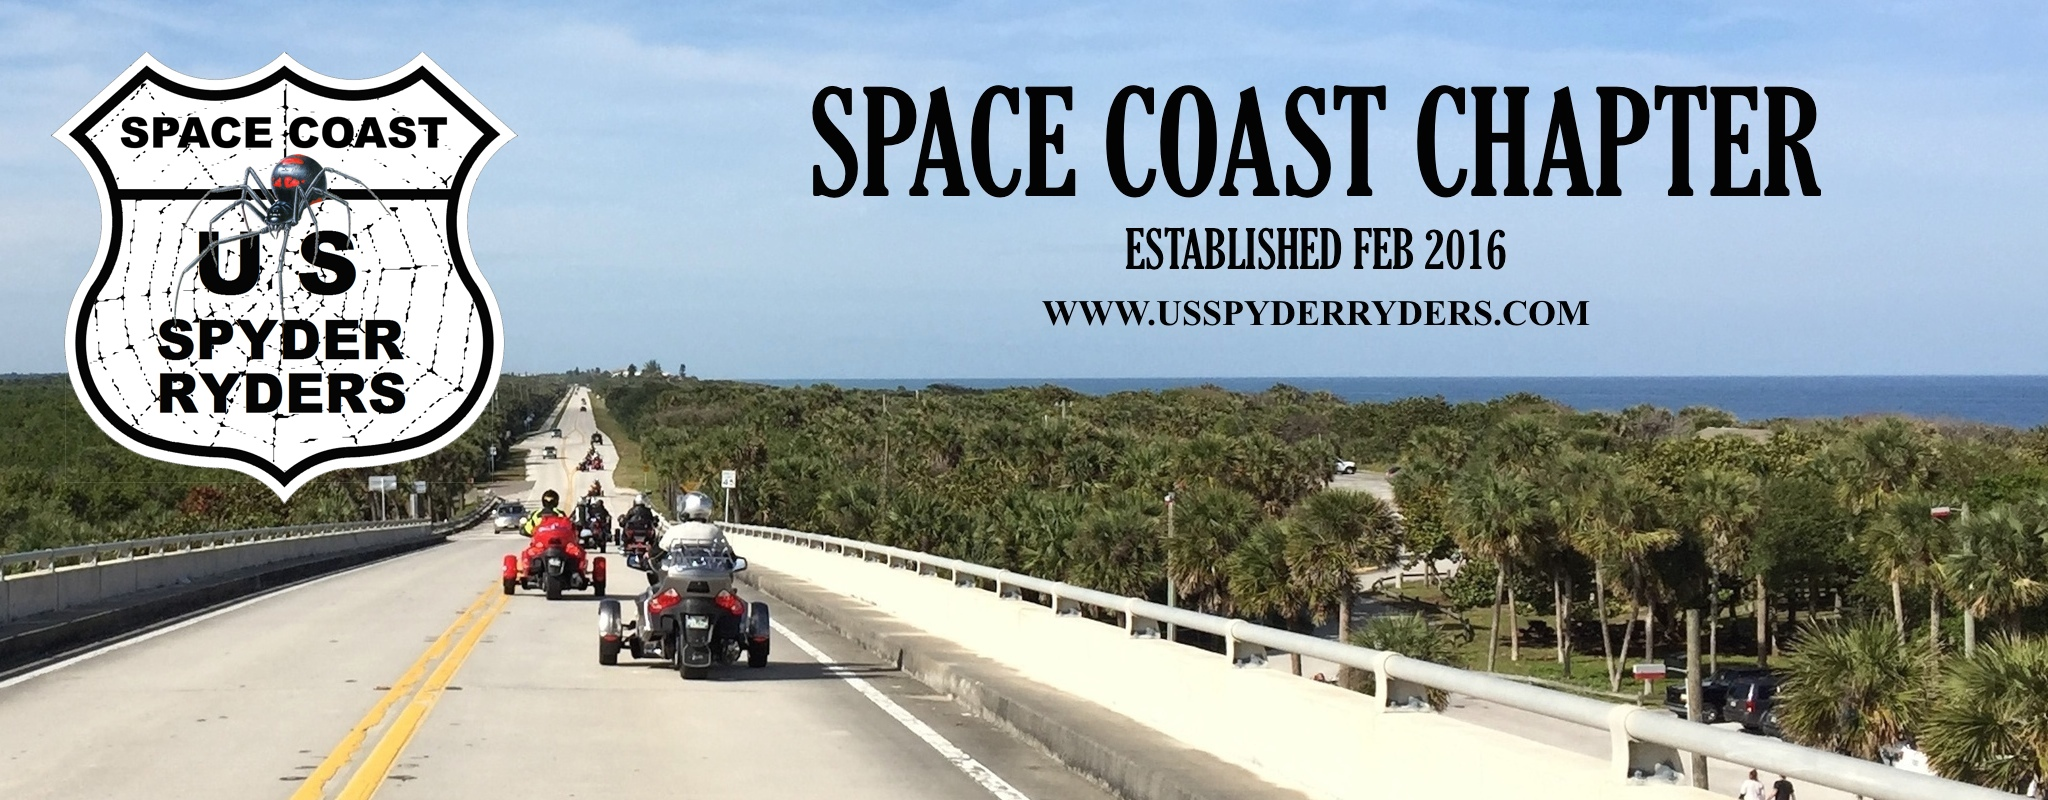 FL-SPACE COAST.JPG